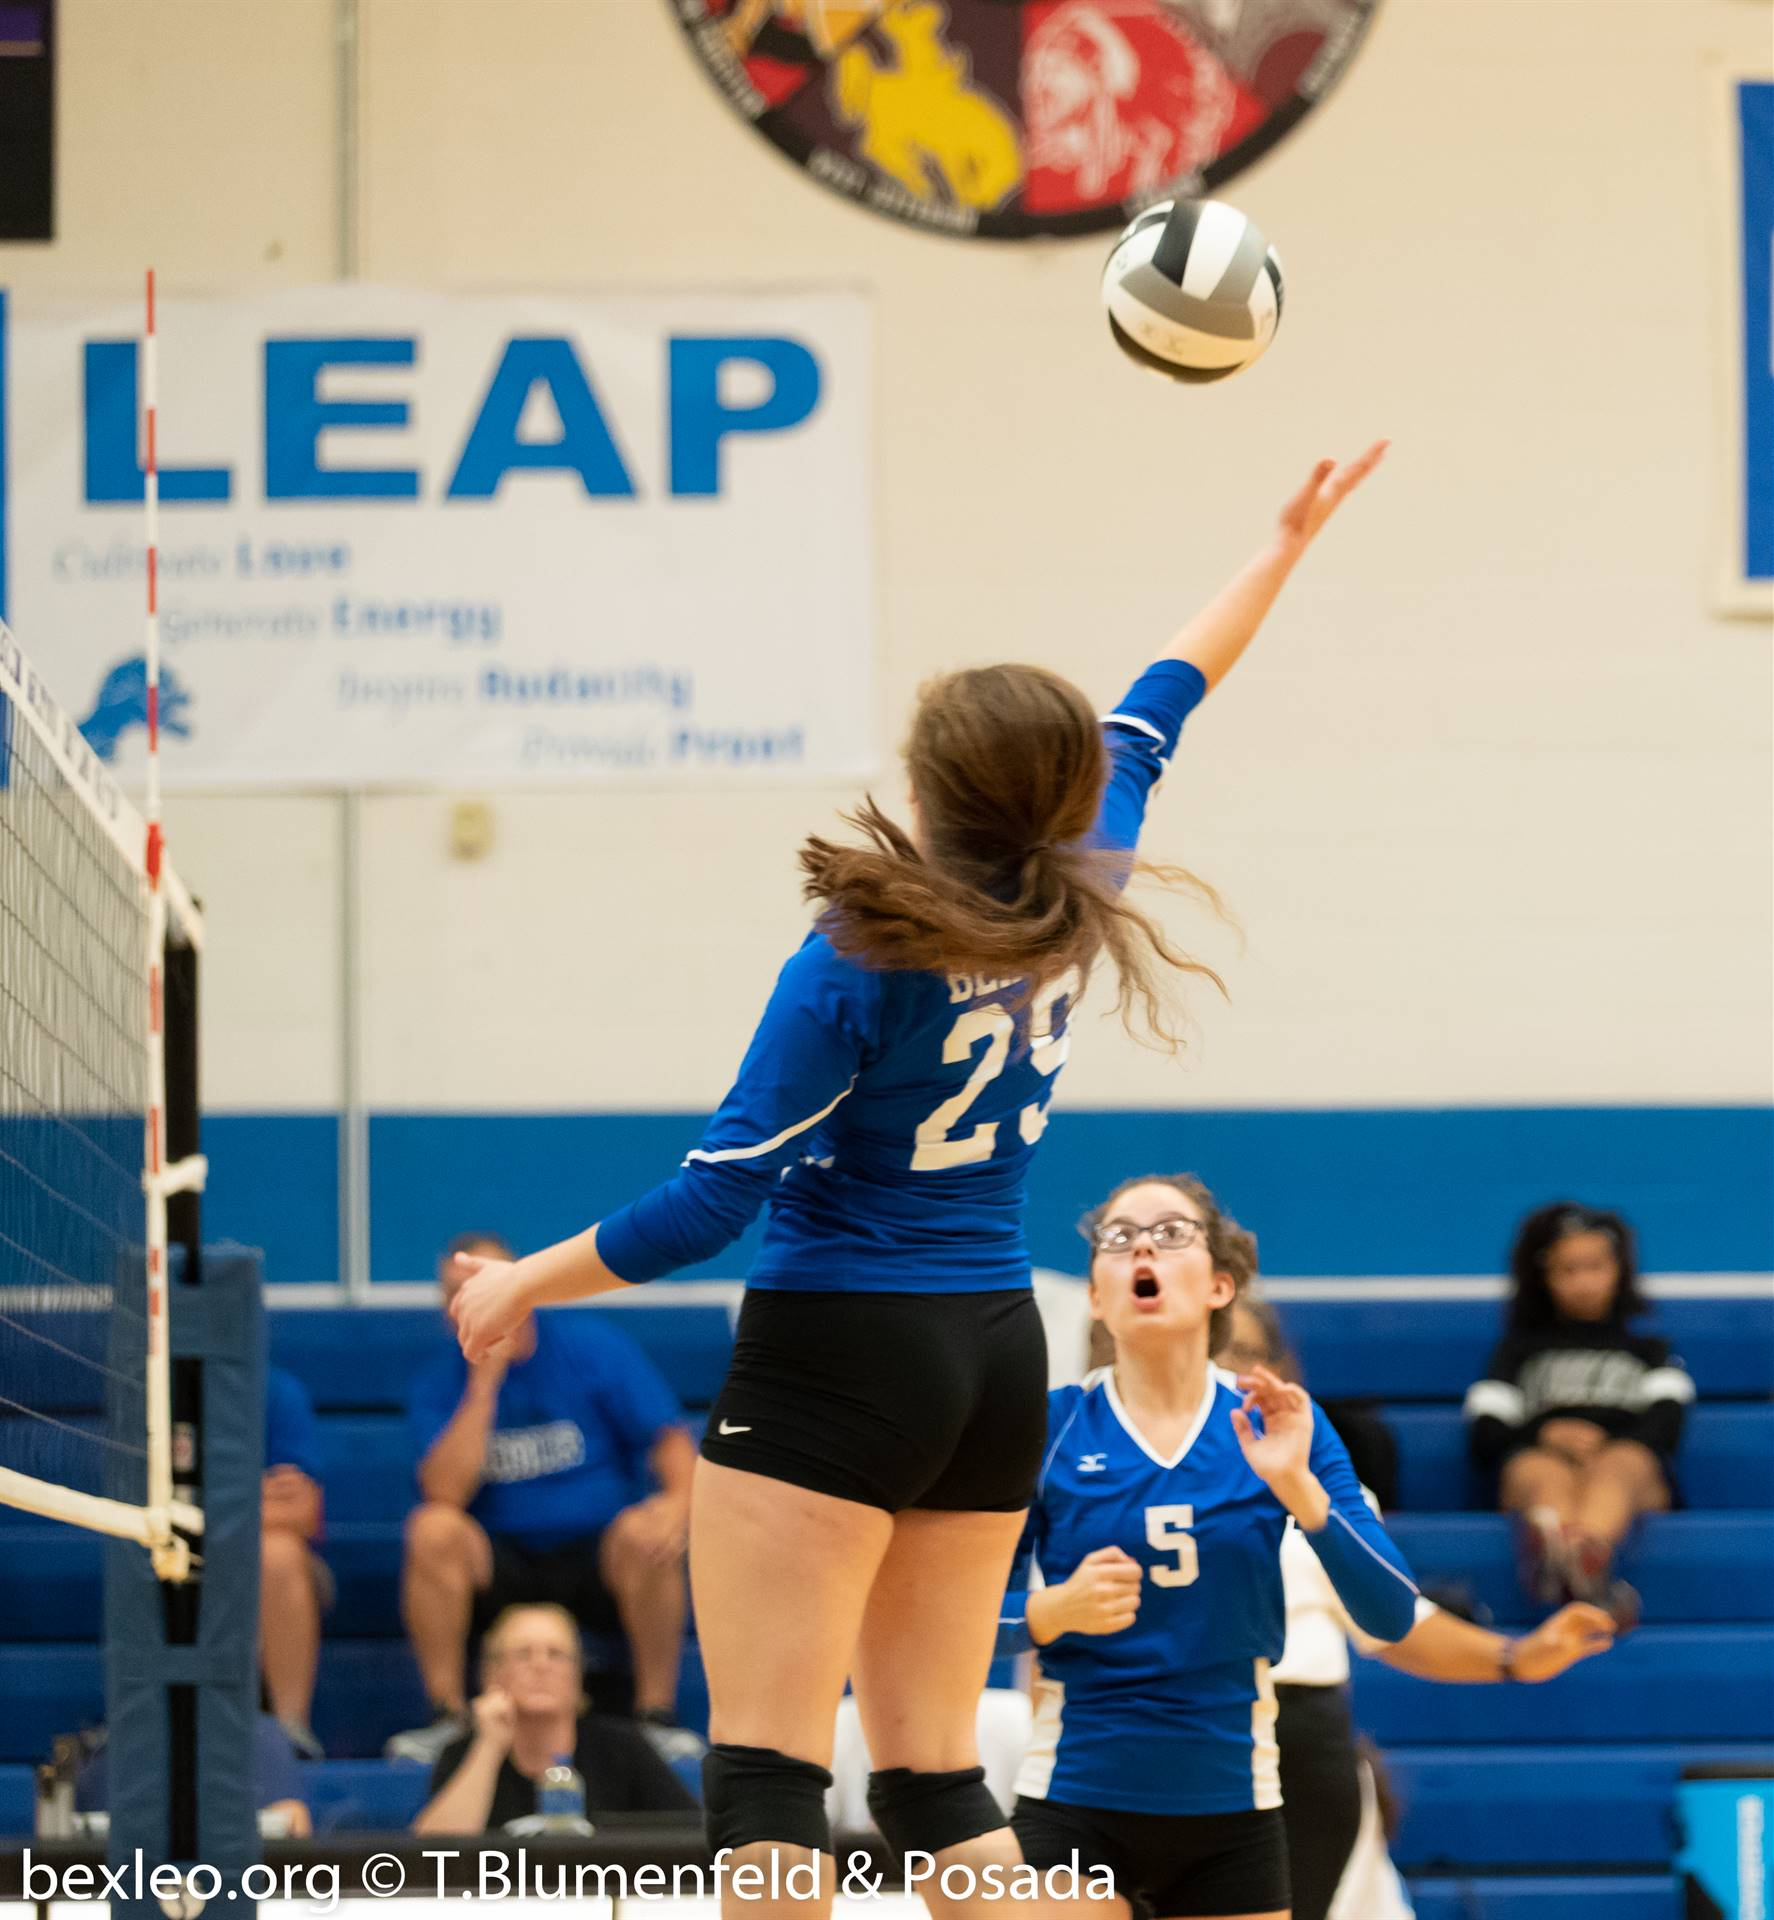 Volleyball player tapping the ball over the net